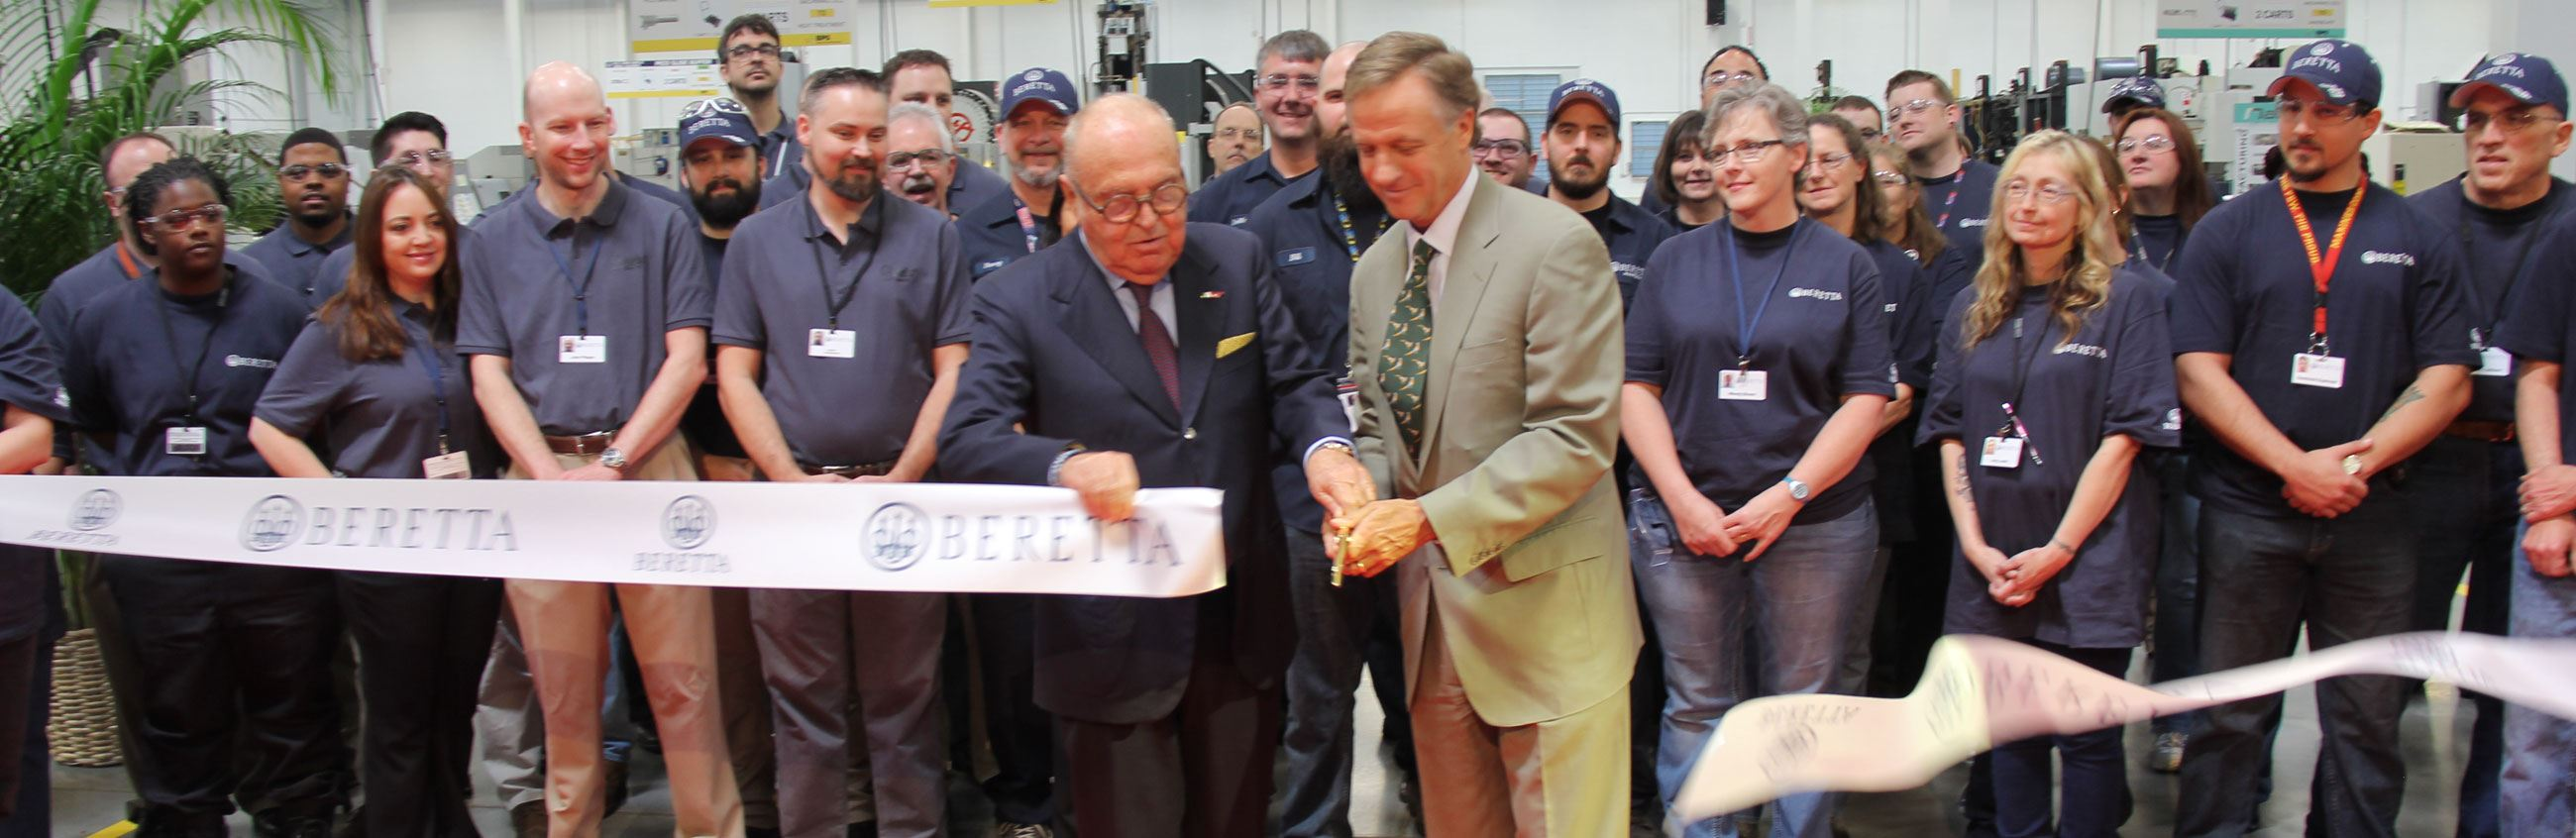 Ribbon Cutting at Beretta Plant